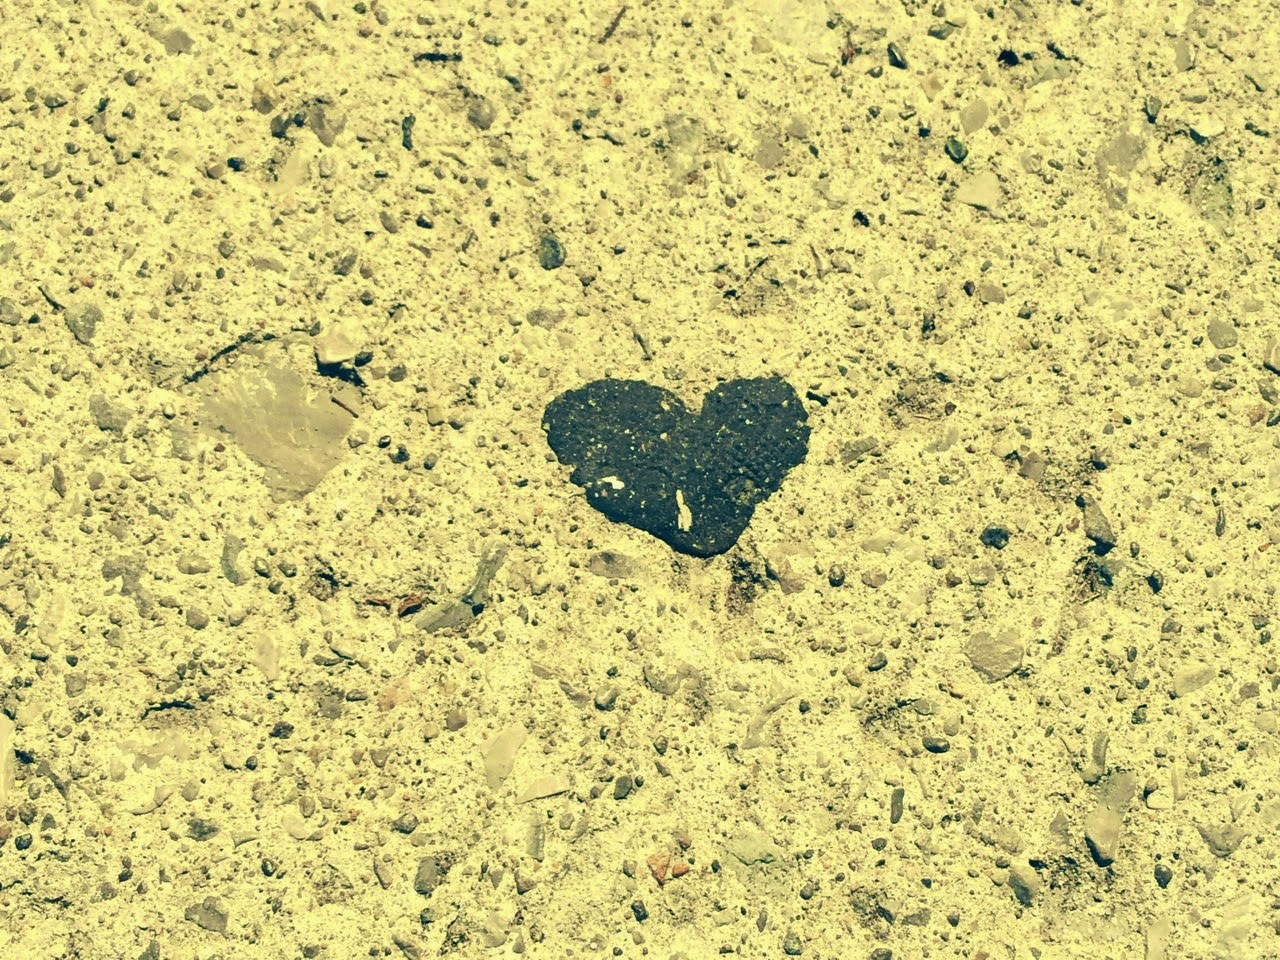 little black heart on city sidewalk